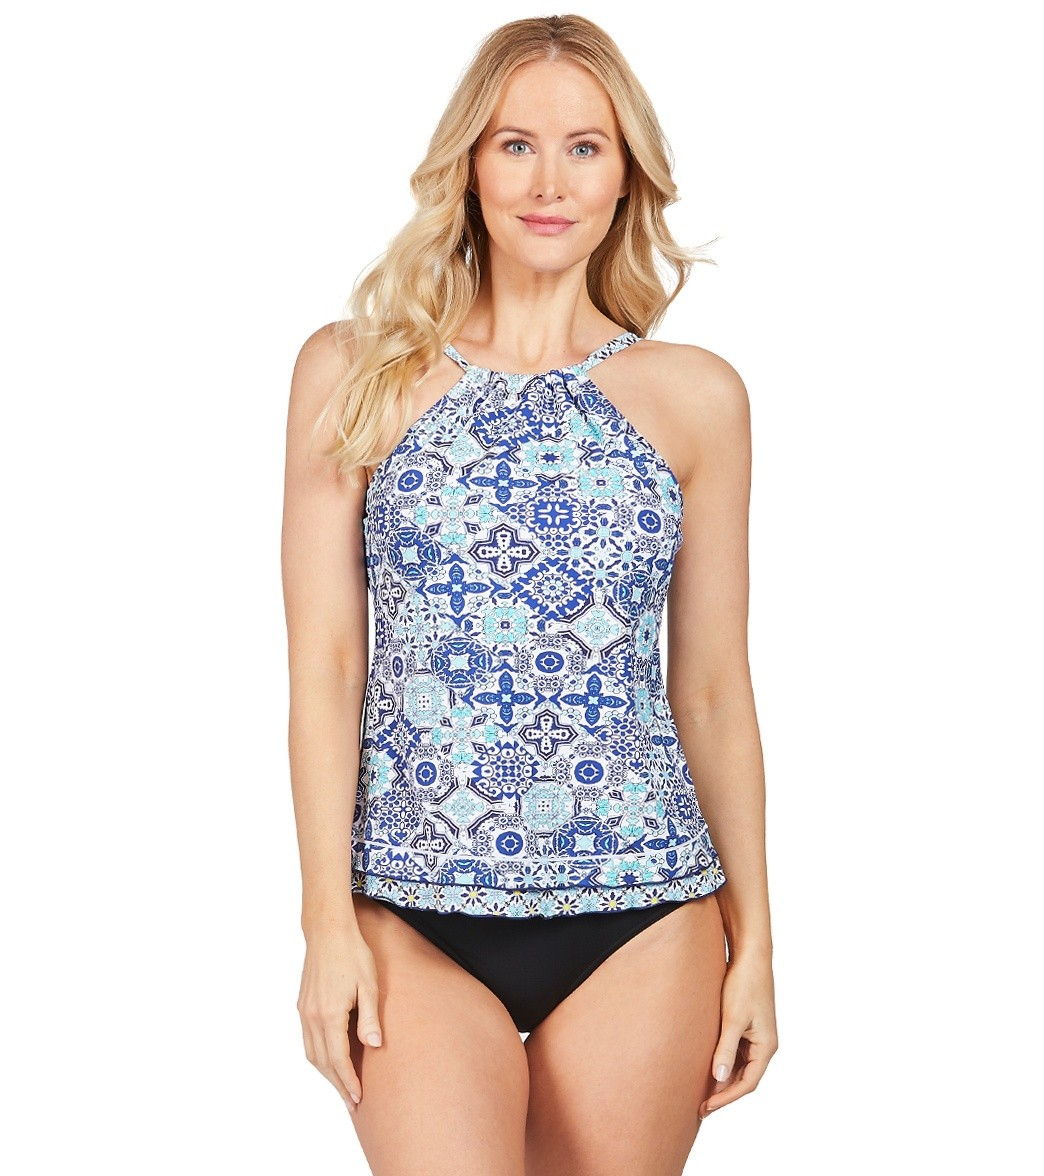 19172d113ad3a 24th   Ocean Stain Glass Mosaic High Neck Underwire Tankini Top at  SwimOutlet.com - Free Shipping